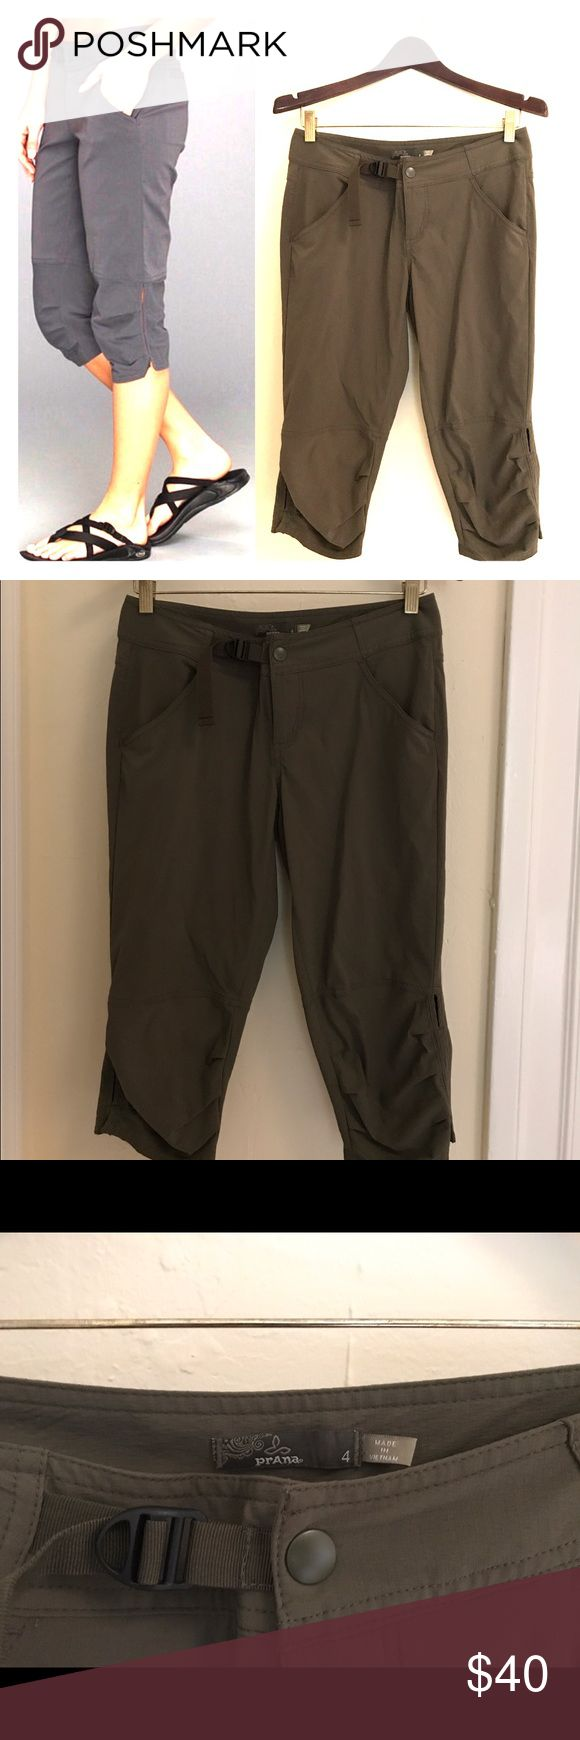 Prana Jasmine Knicker Prana Jasmine Knicker cargo green in great condition.  Water-resistant coating defends against light precipitation Adjustable waistband offers a customized fit Relaxed fit boosts your range of motion Multiple pockets stash your valuables Prana Pants Capris